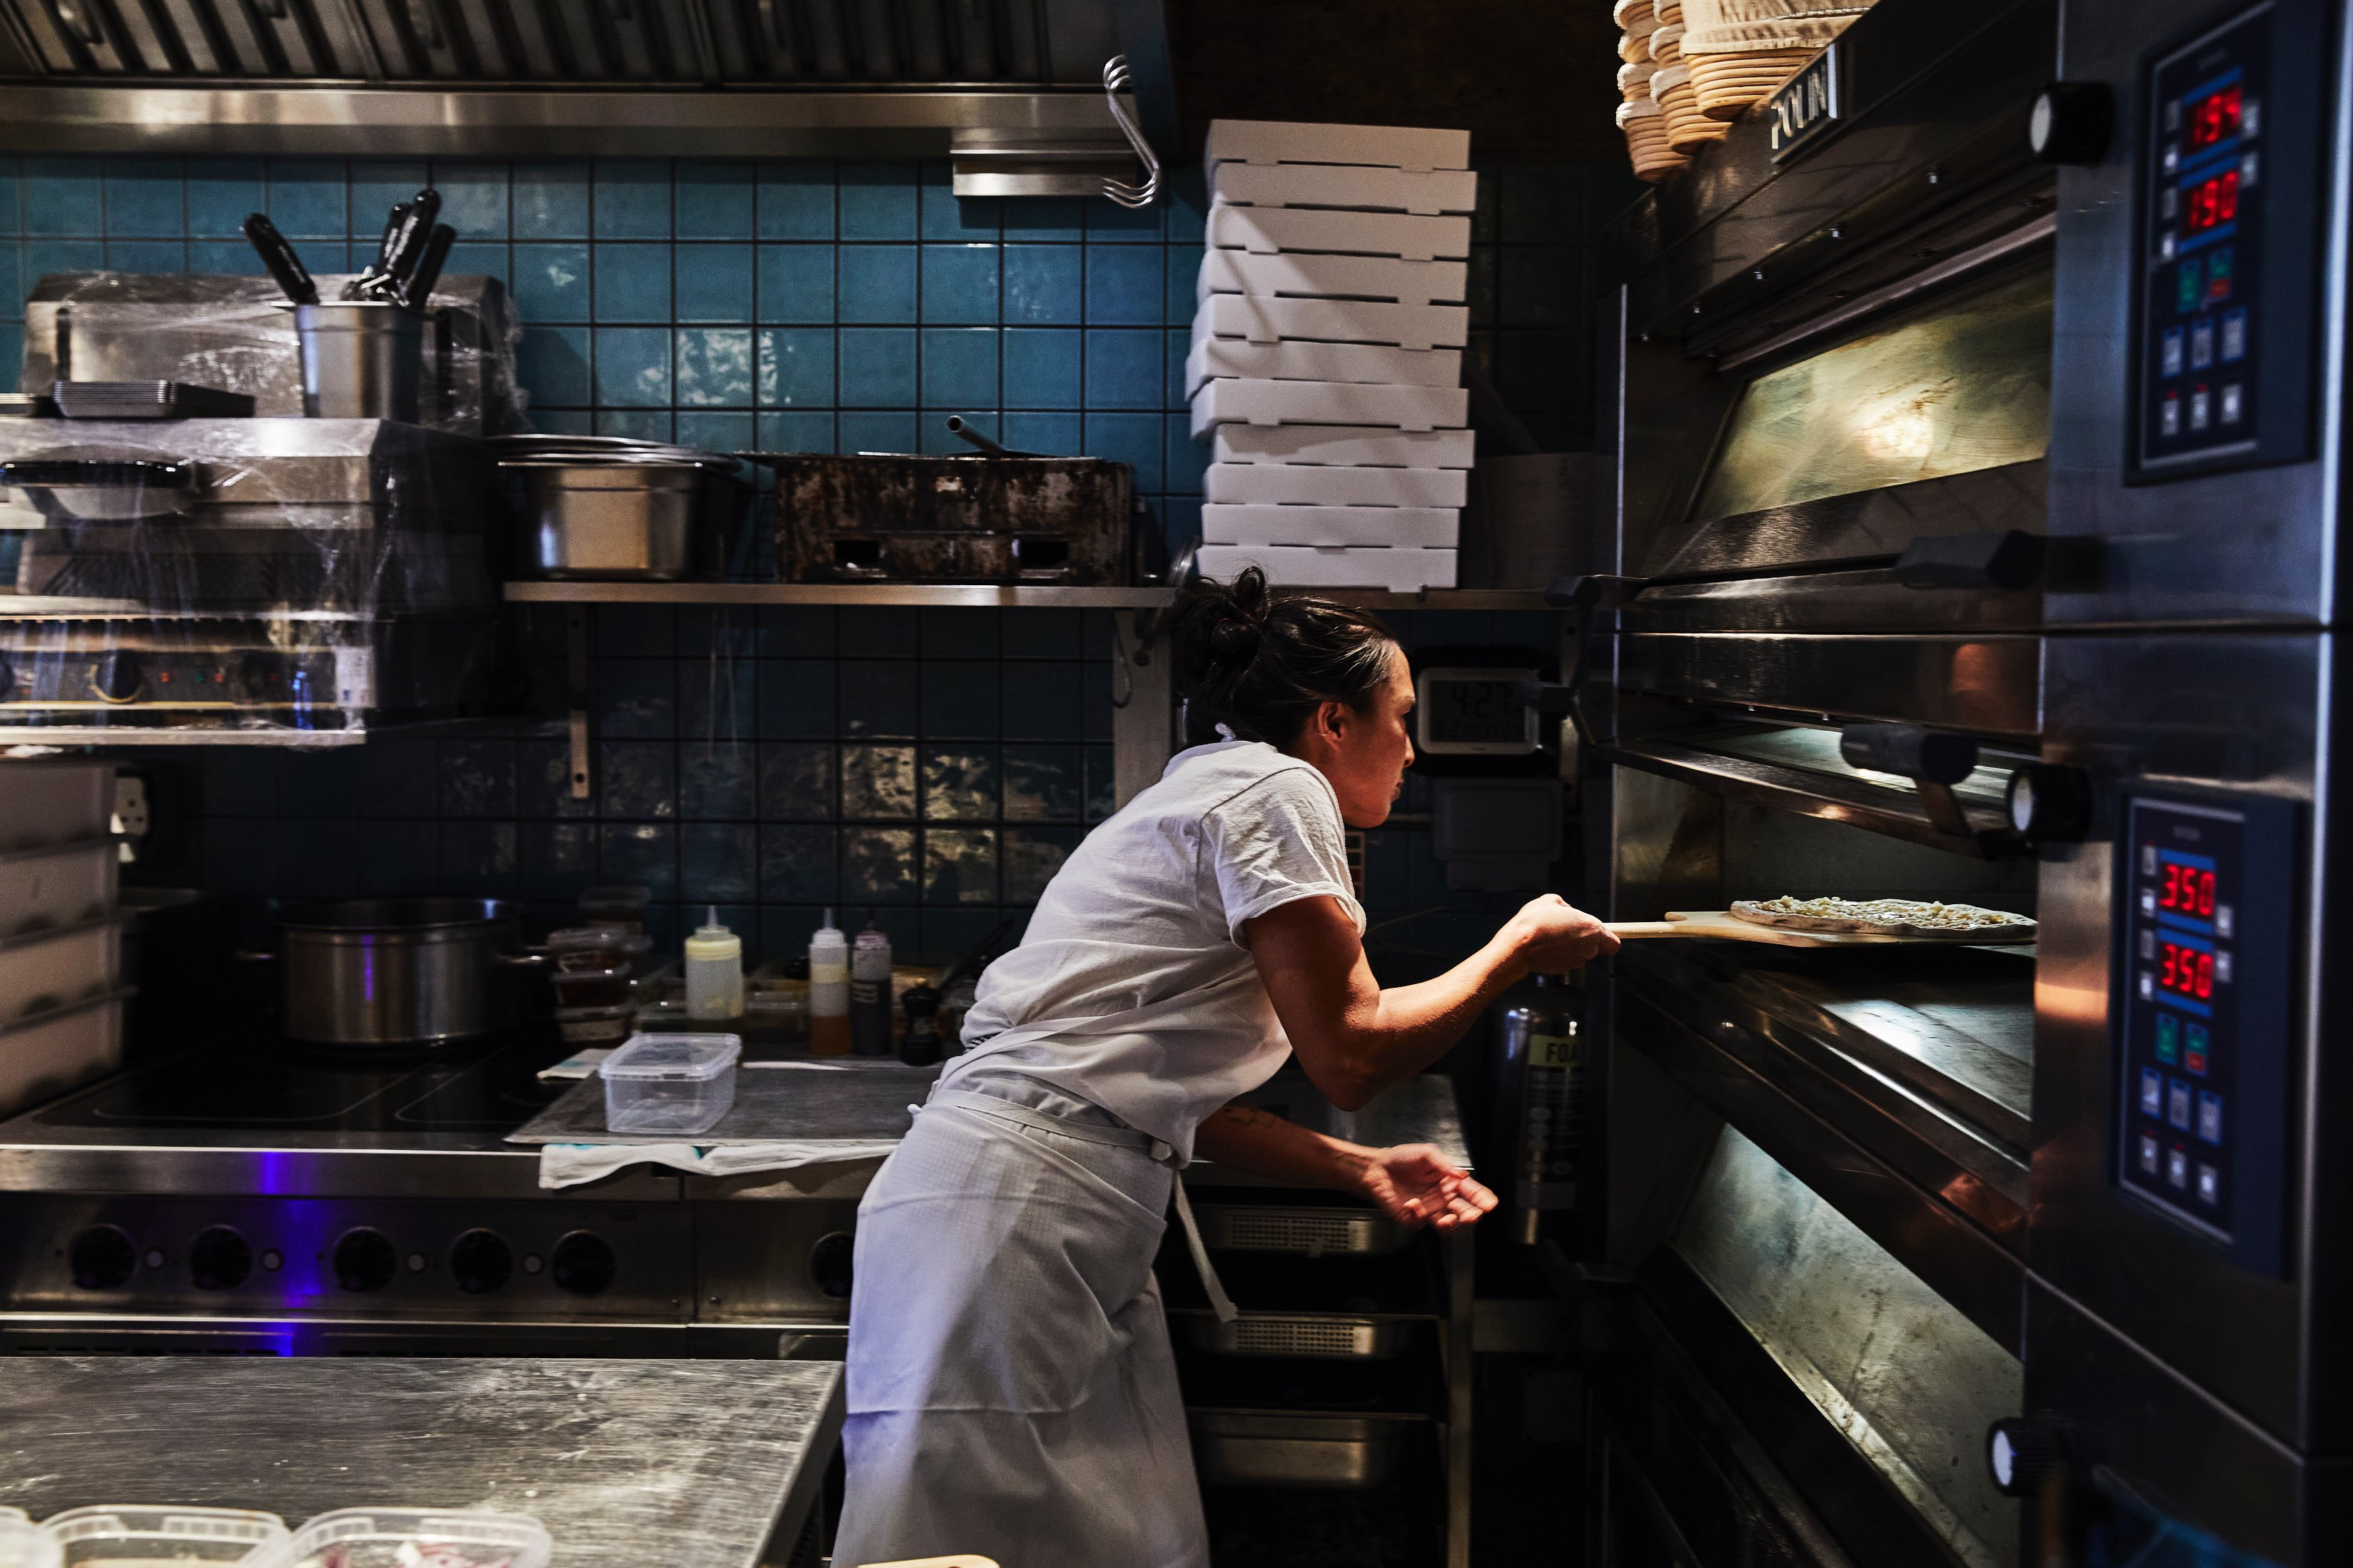 Pam Yung of ASAP pizza, at Flor, slides a pizza into a deck oven using a wooden peel